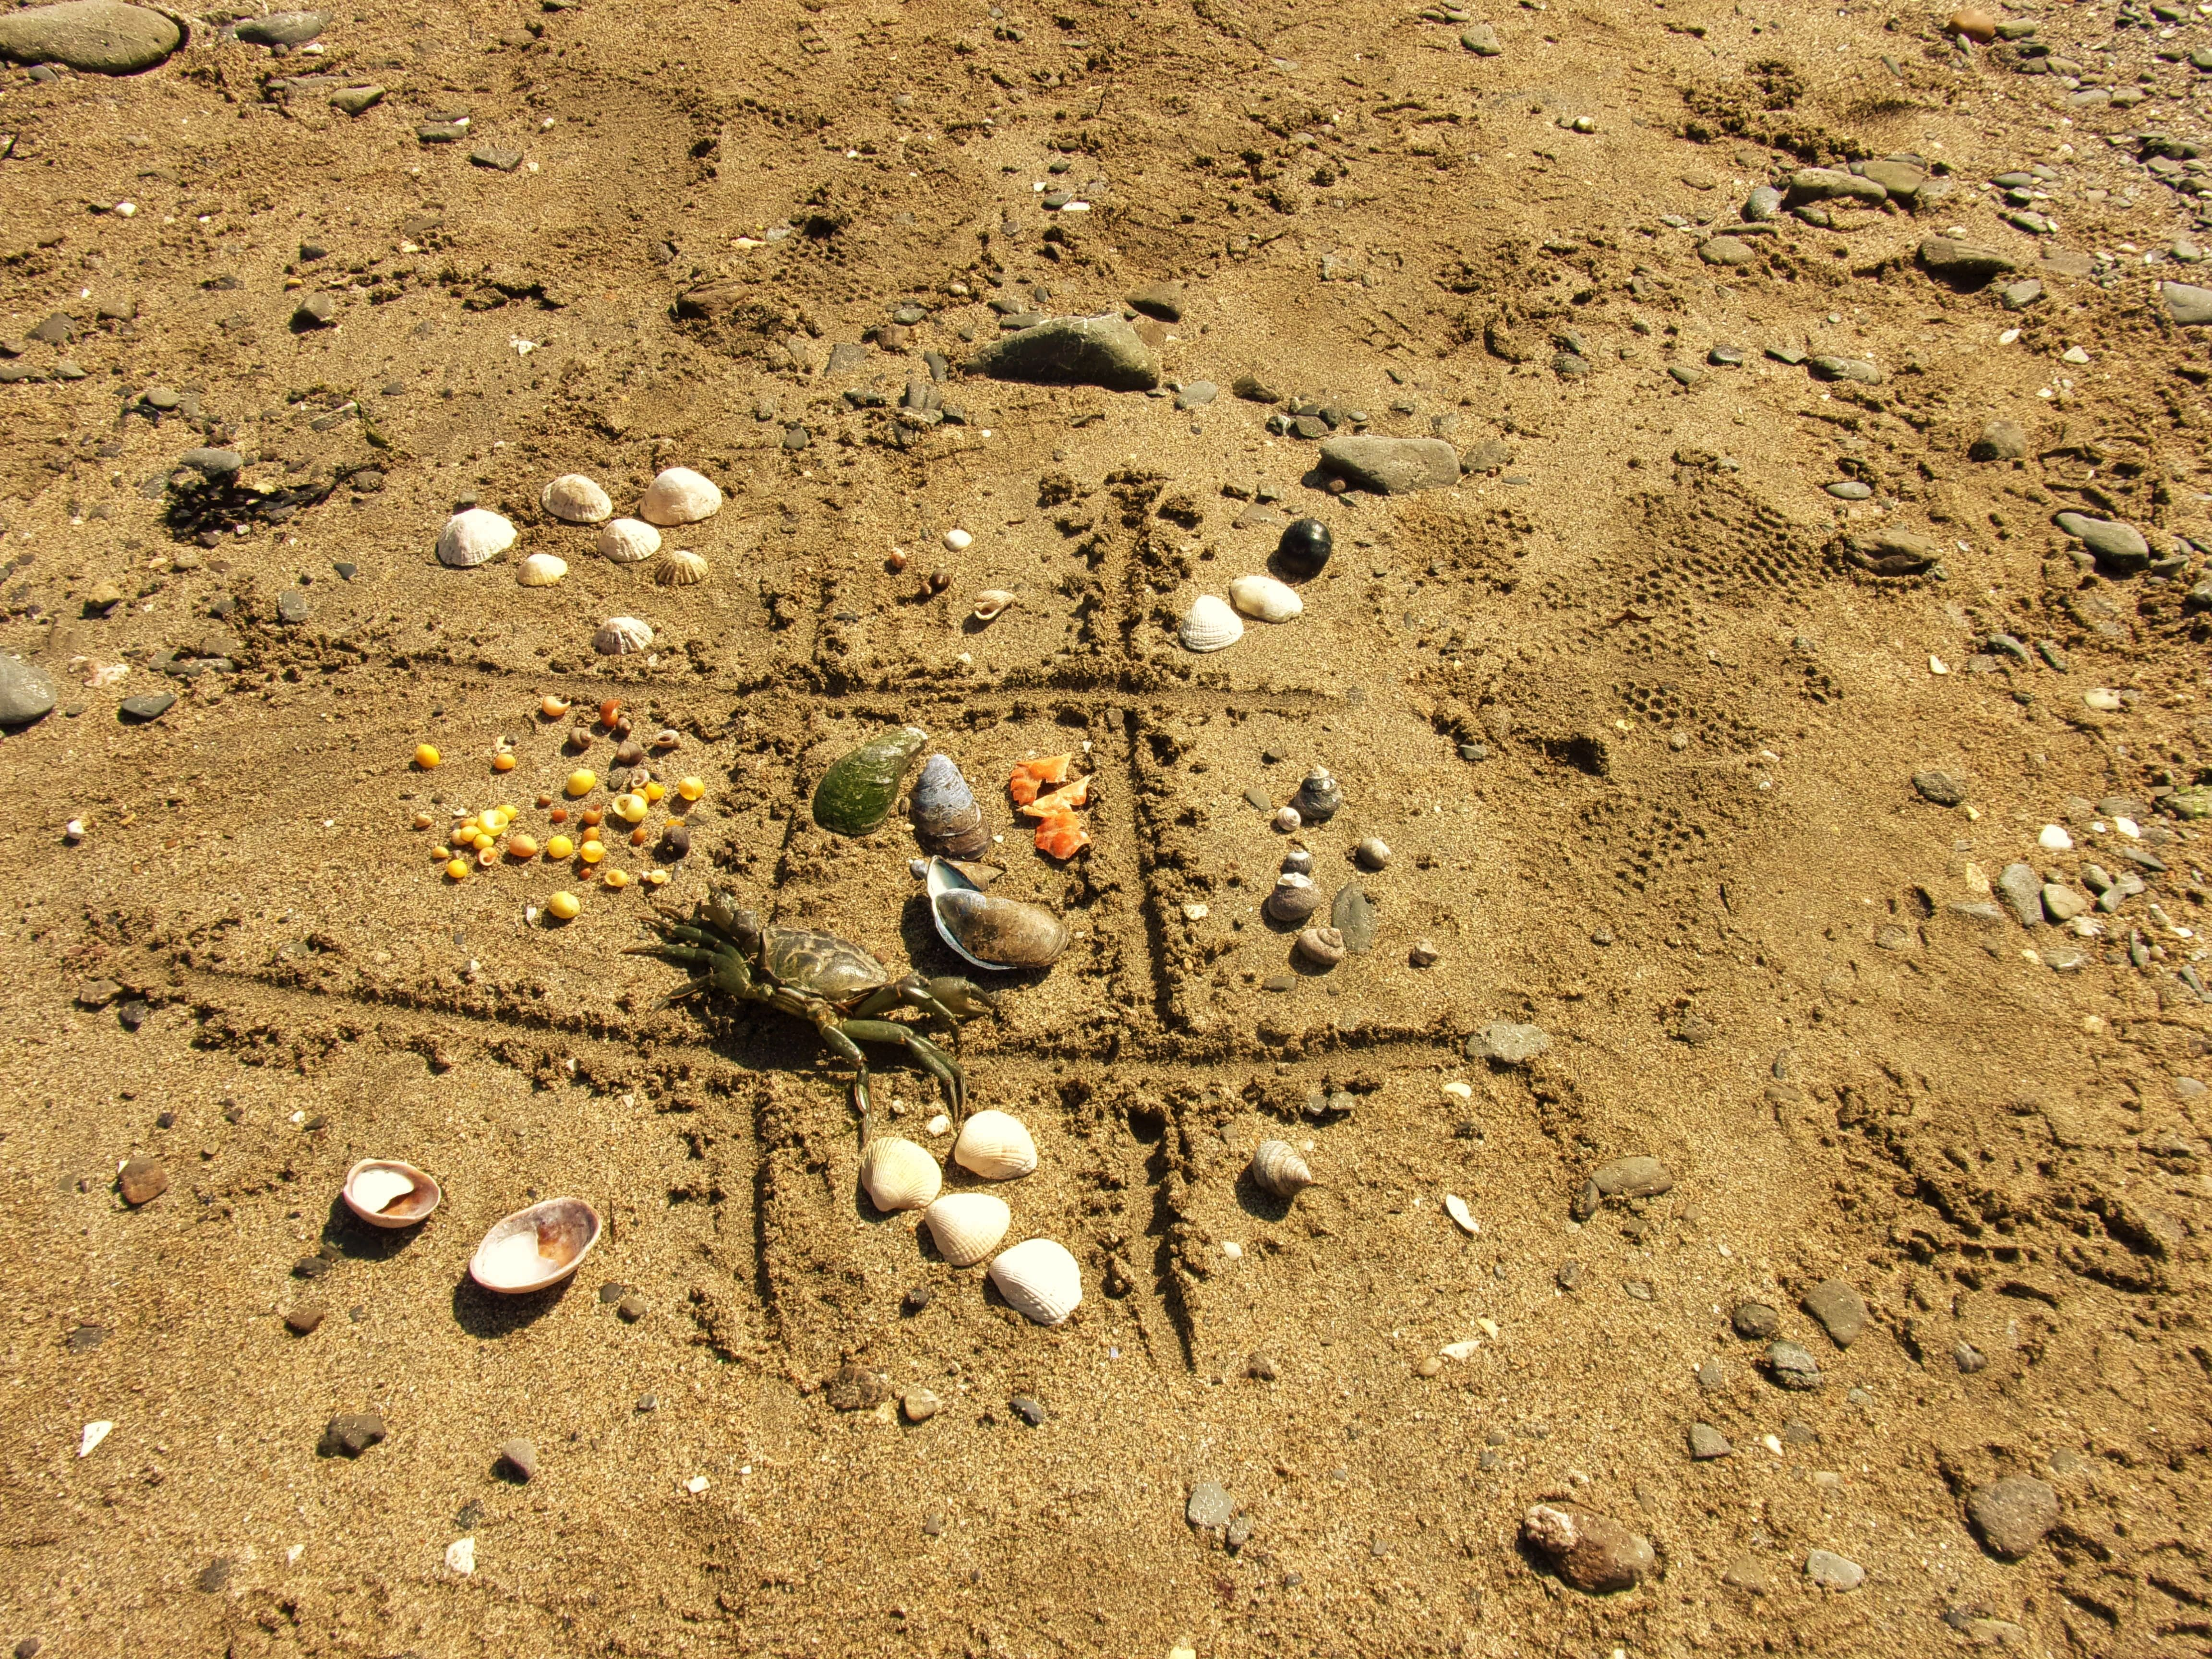 The best beach scavenger hunt. Limpets, dog whelks, periwinkles, Muscles, topshells, slipper limpets, cockles and even a shore crab's peeled shell!